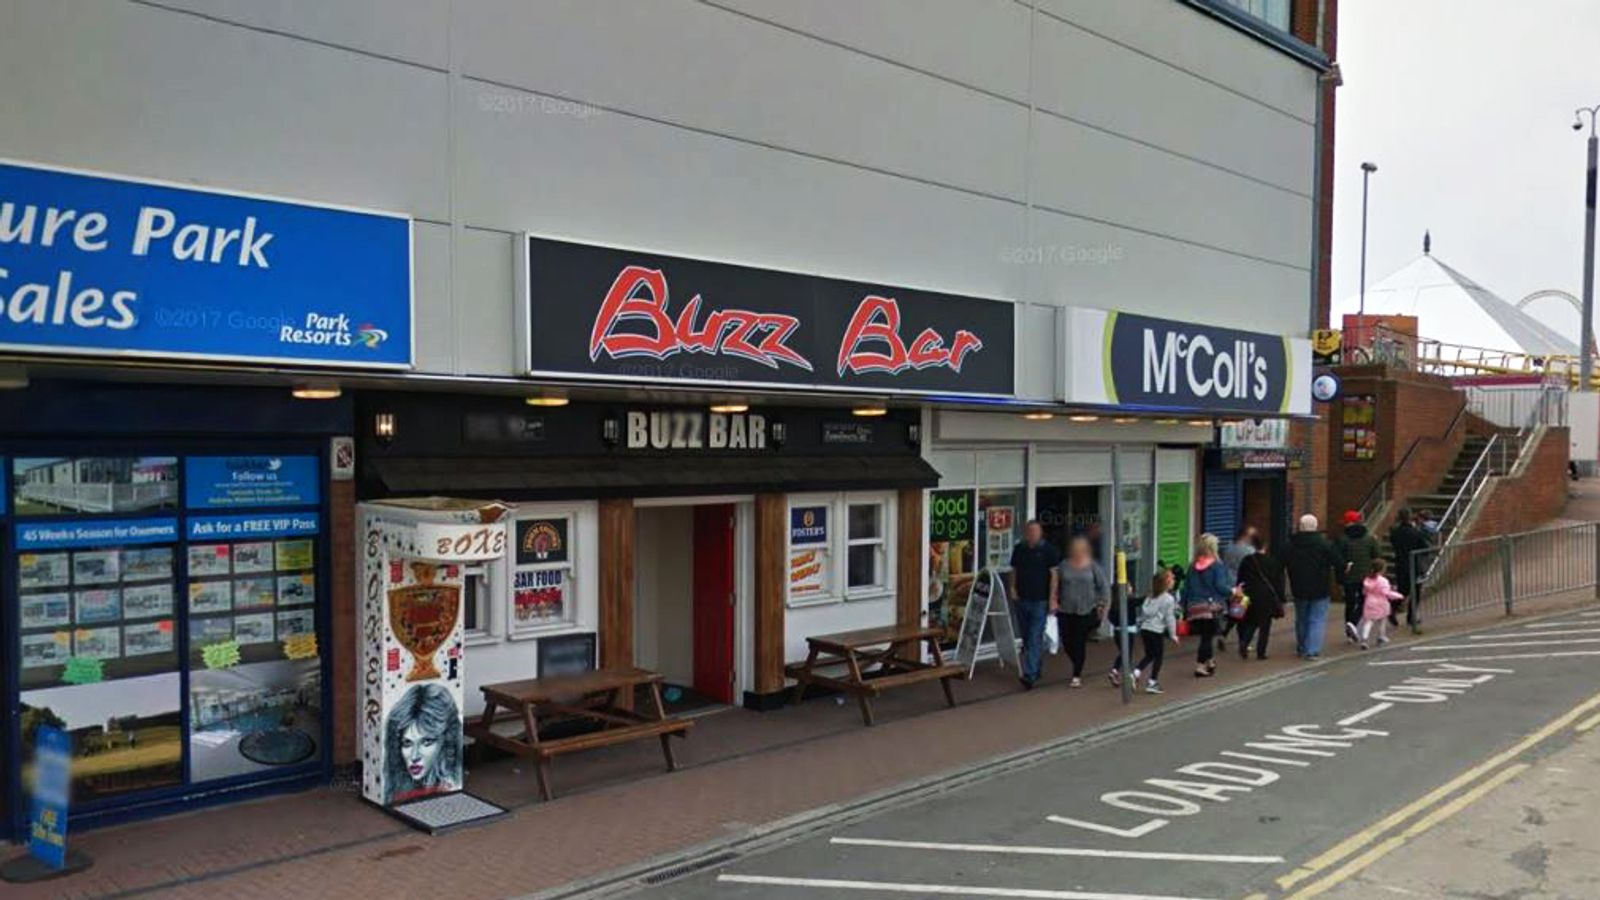 Woman, 52, dies in bar fight in Ingoldmells, Lincolnshire